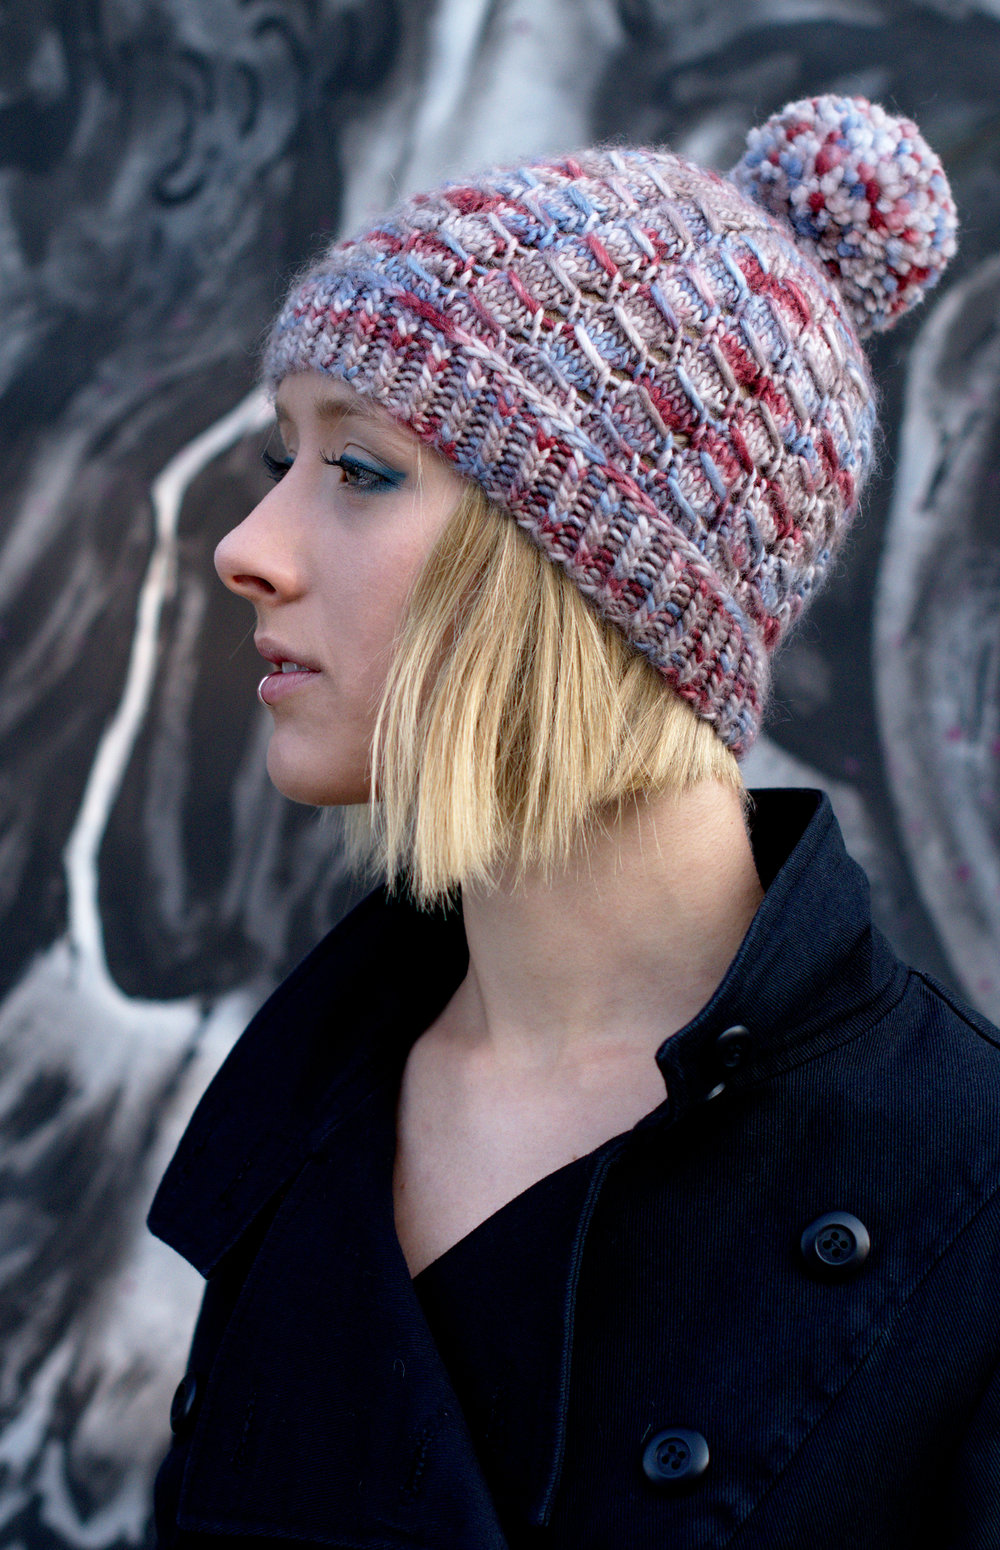 Laccio hand knit beanie pattern for aran weight yarn